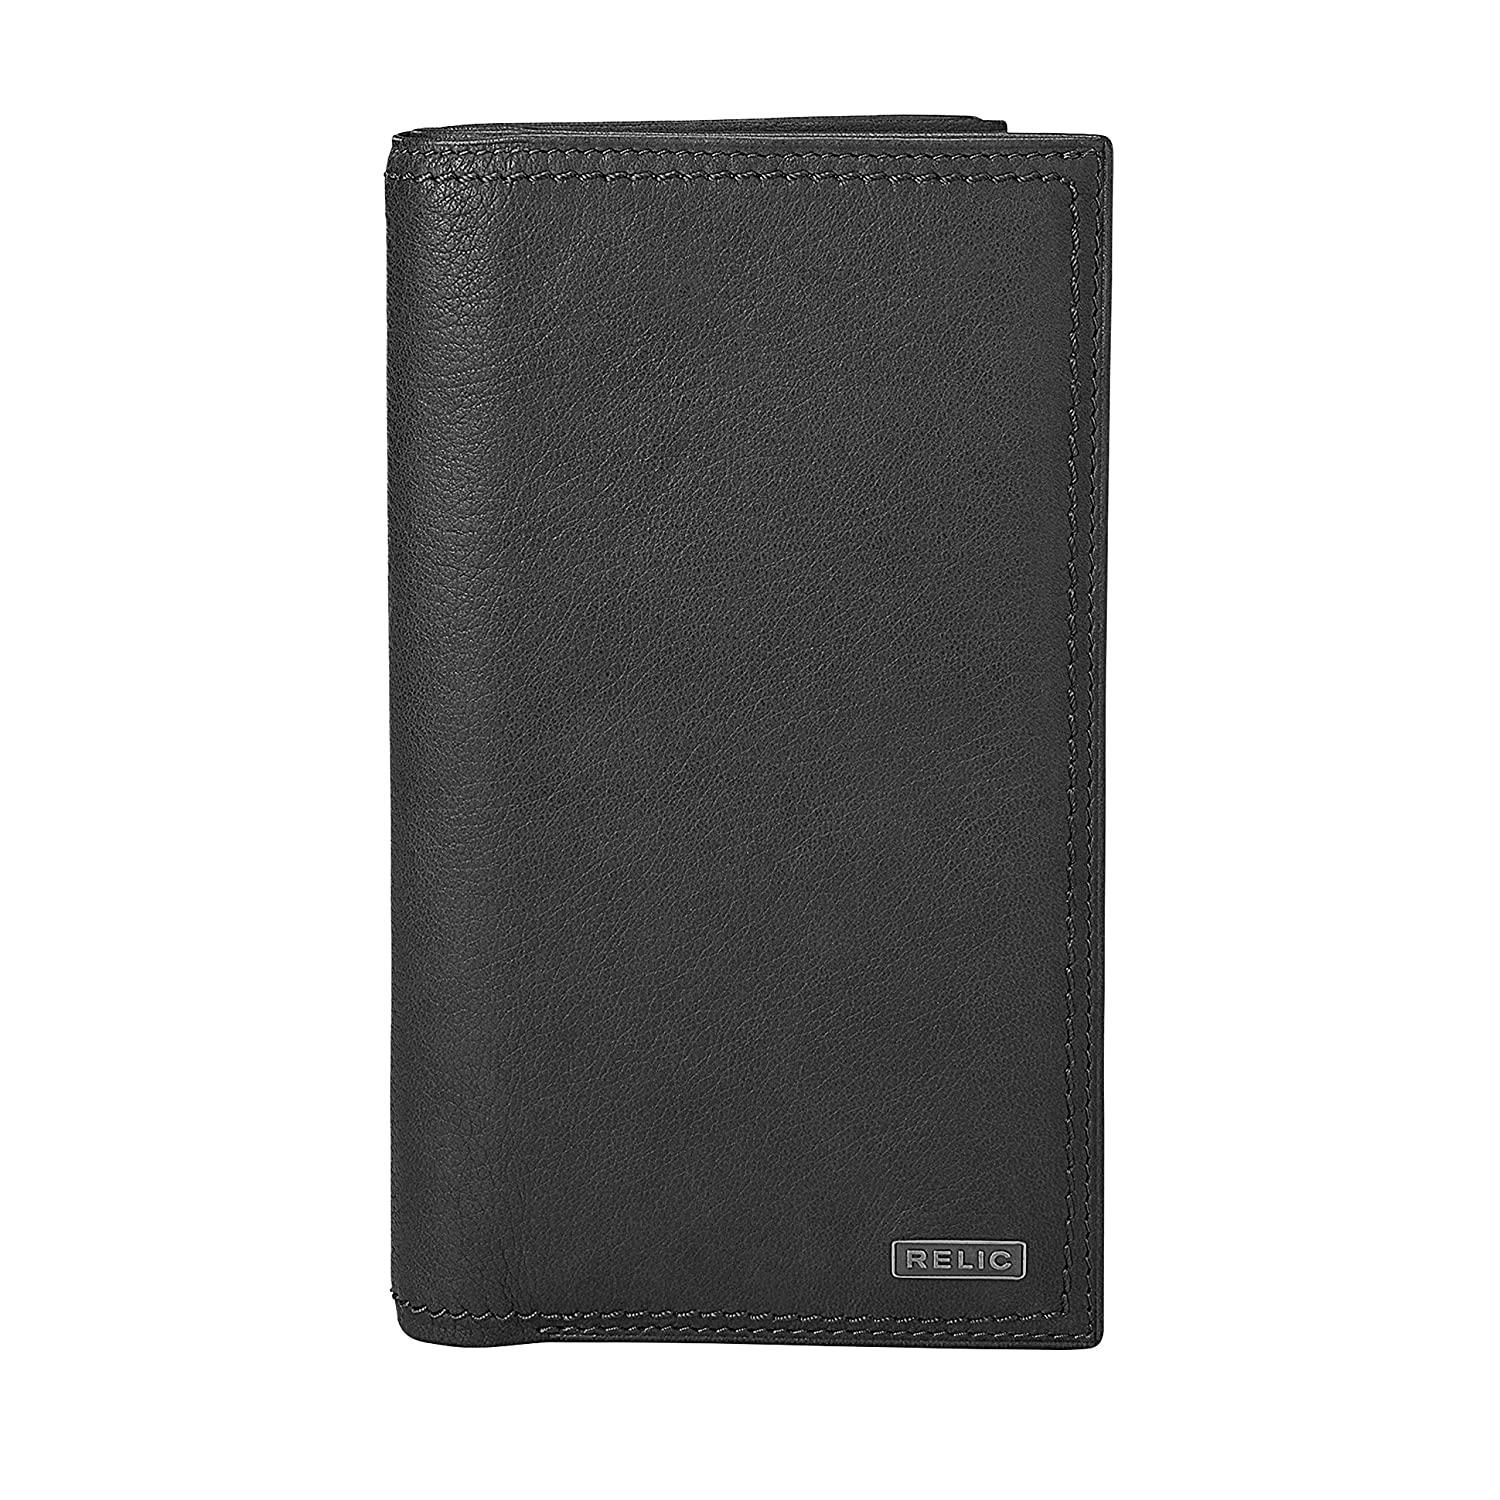 dd138c458885c6 Relic by Fossil Men's Mark Leather Checkbook Wallet, Black at Amazon Men's  Clothing store: